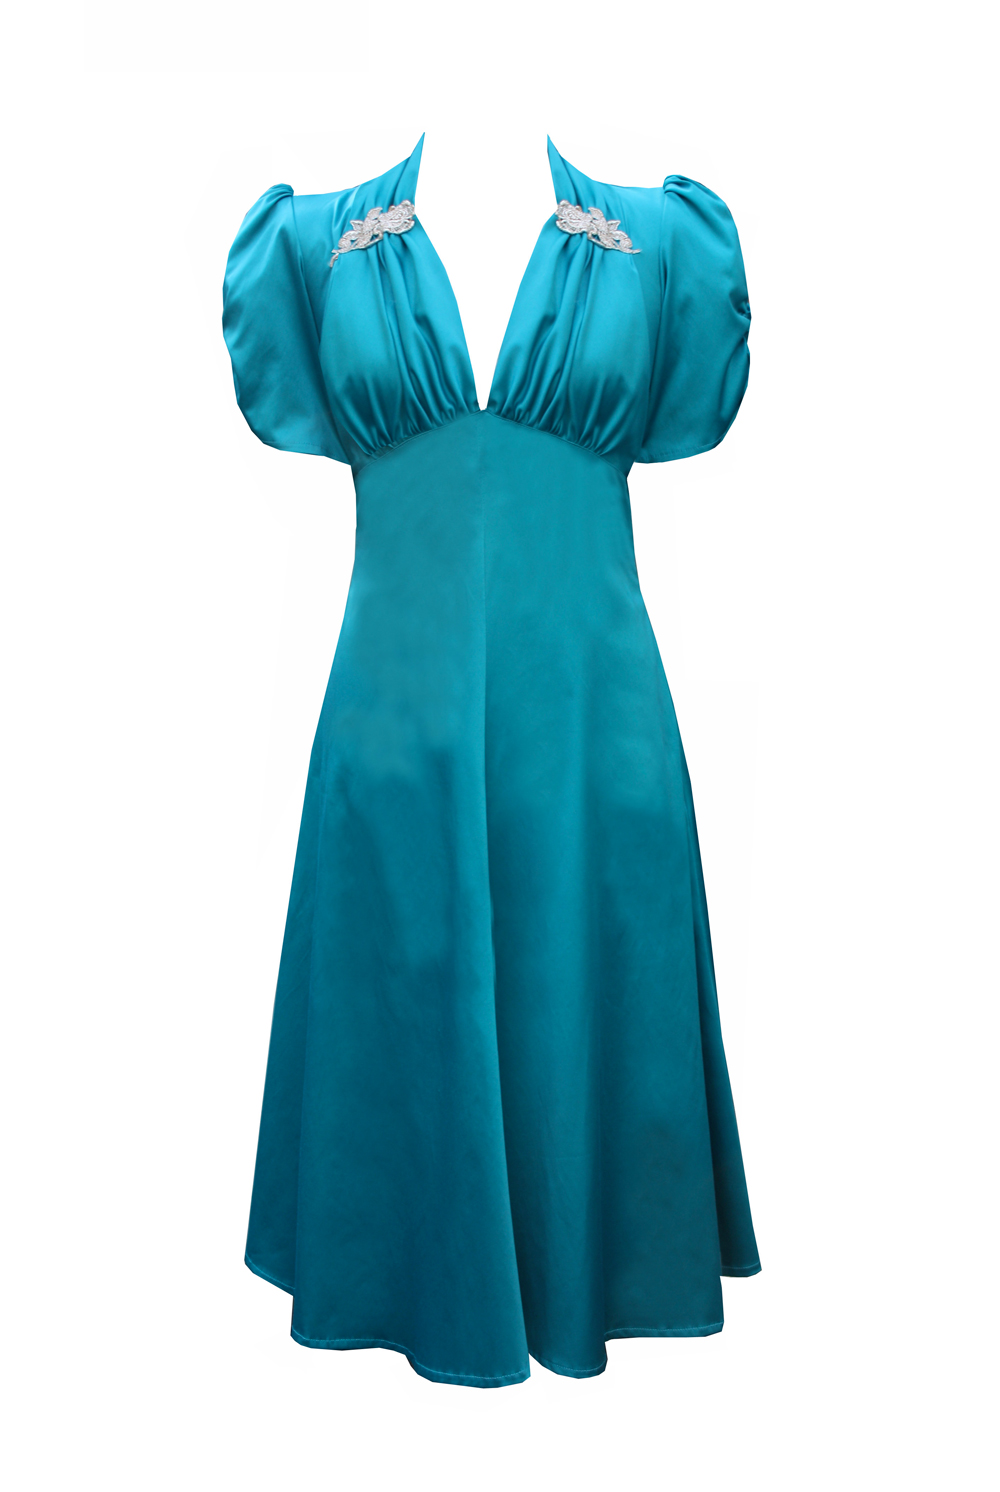 Turquoise-40's-Starlet-Dress